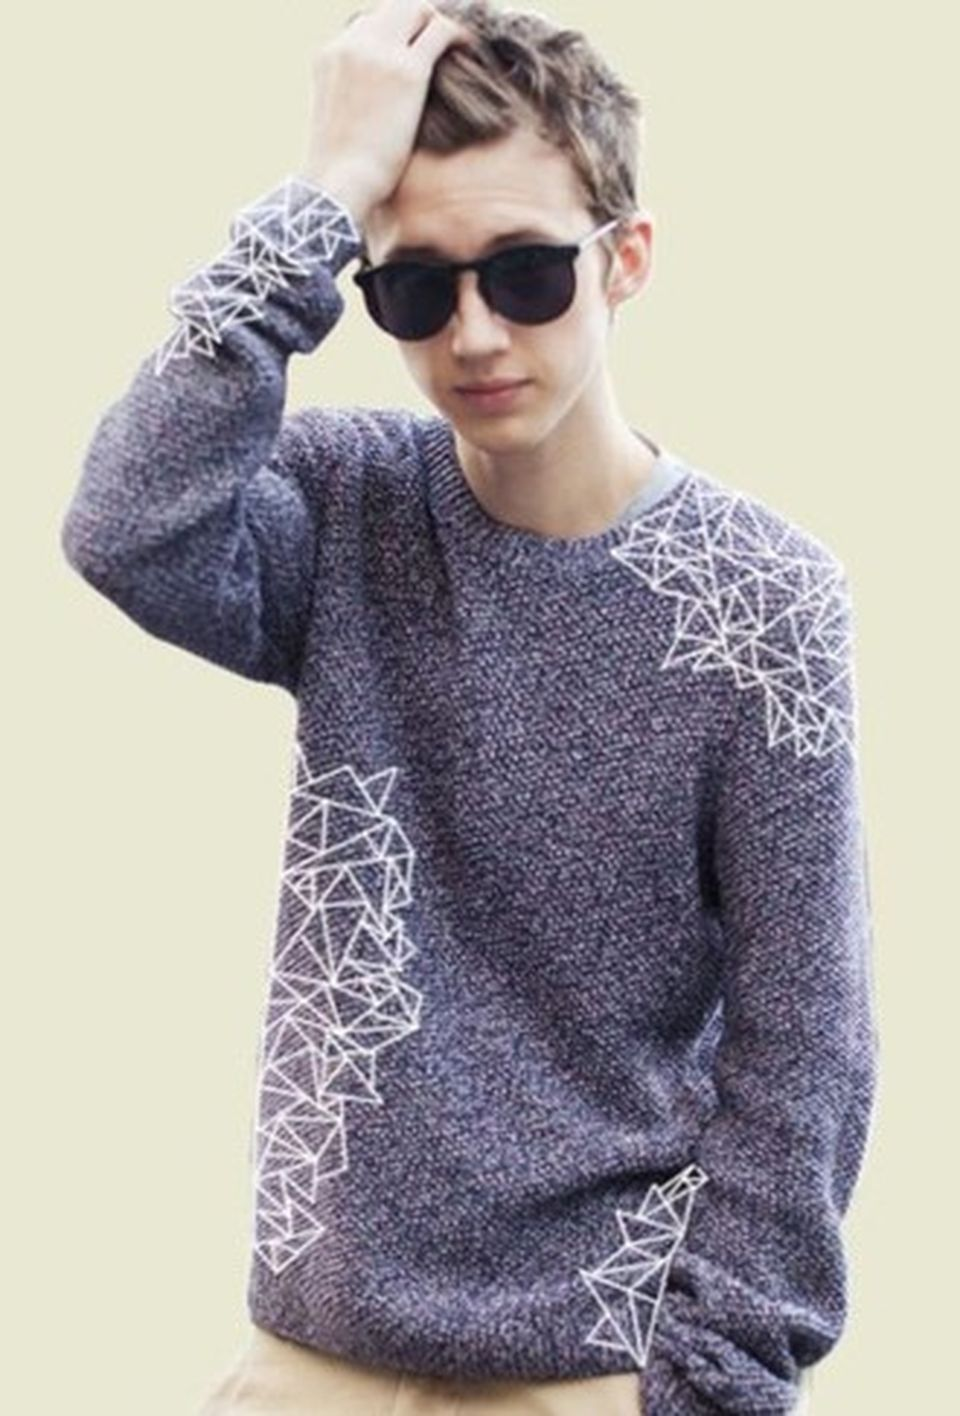 Casual Indie Mens Fashion Outfits Style 8: Casual Indie Mens Fashion Outfits Style 4